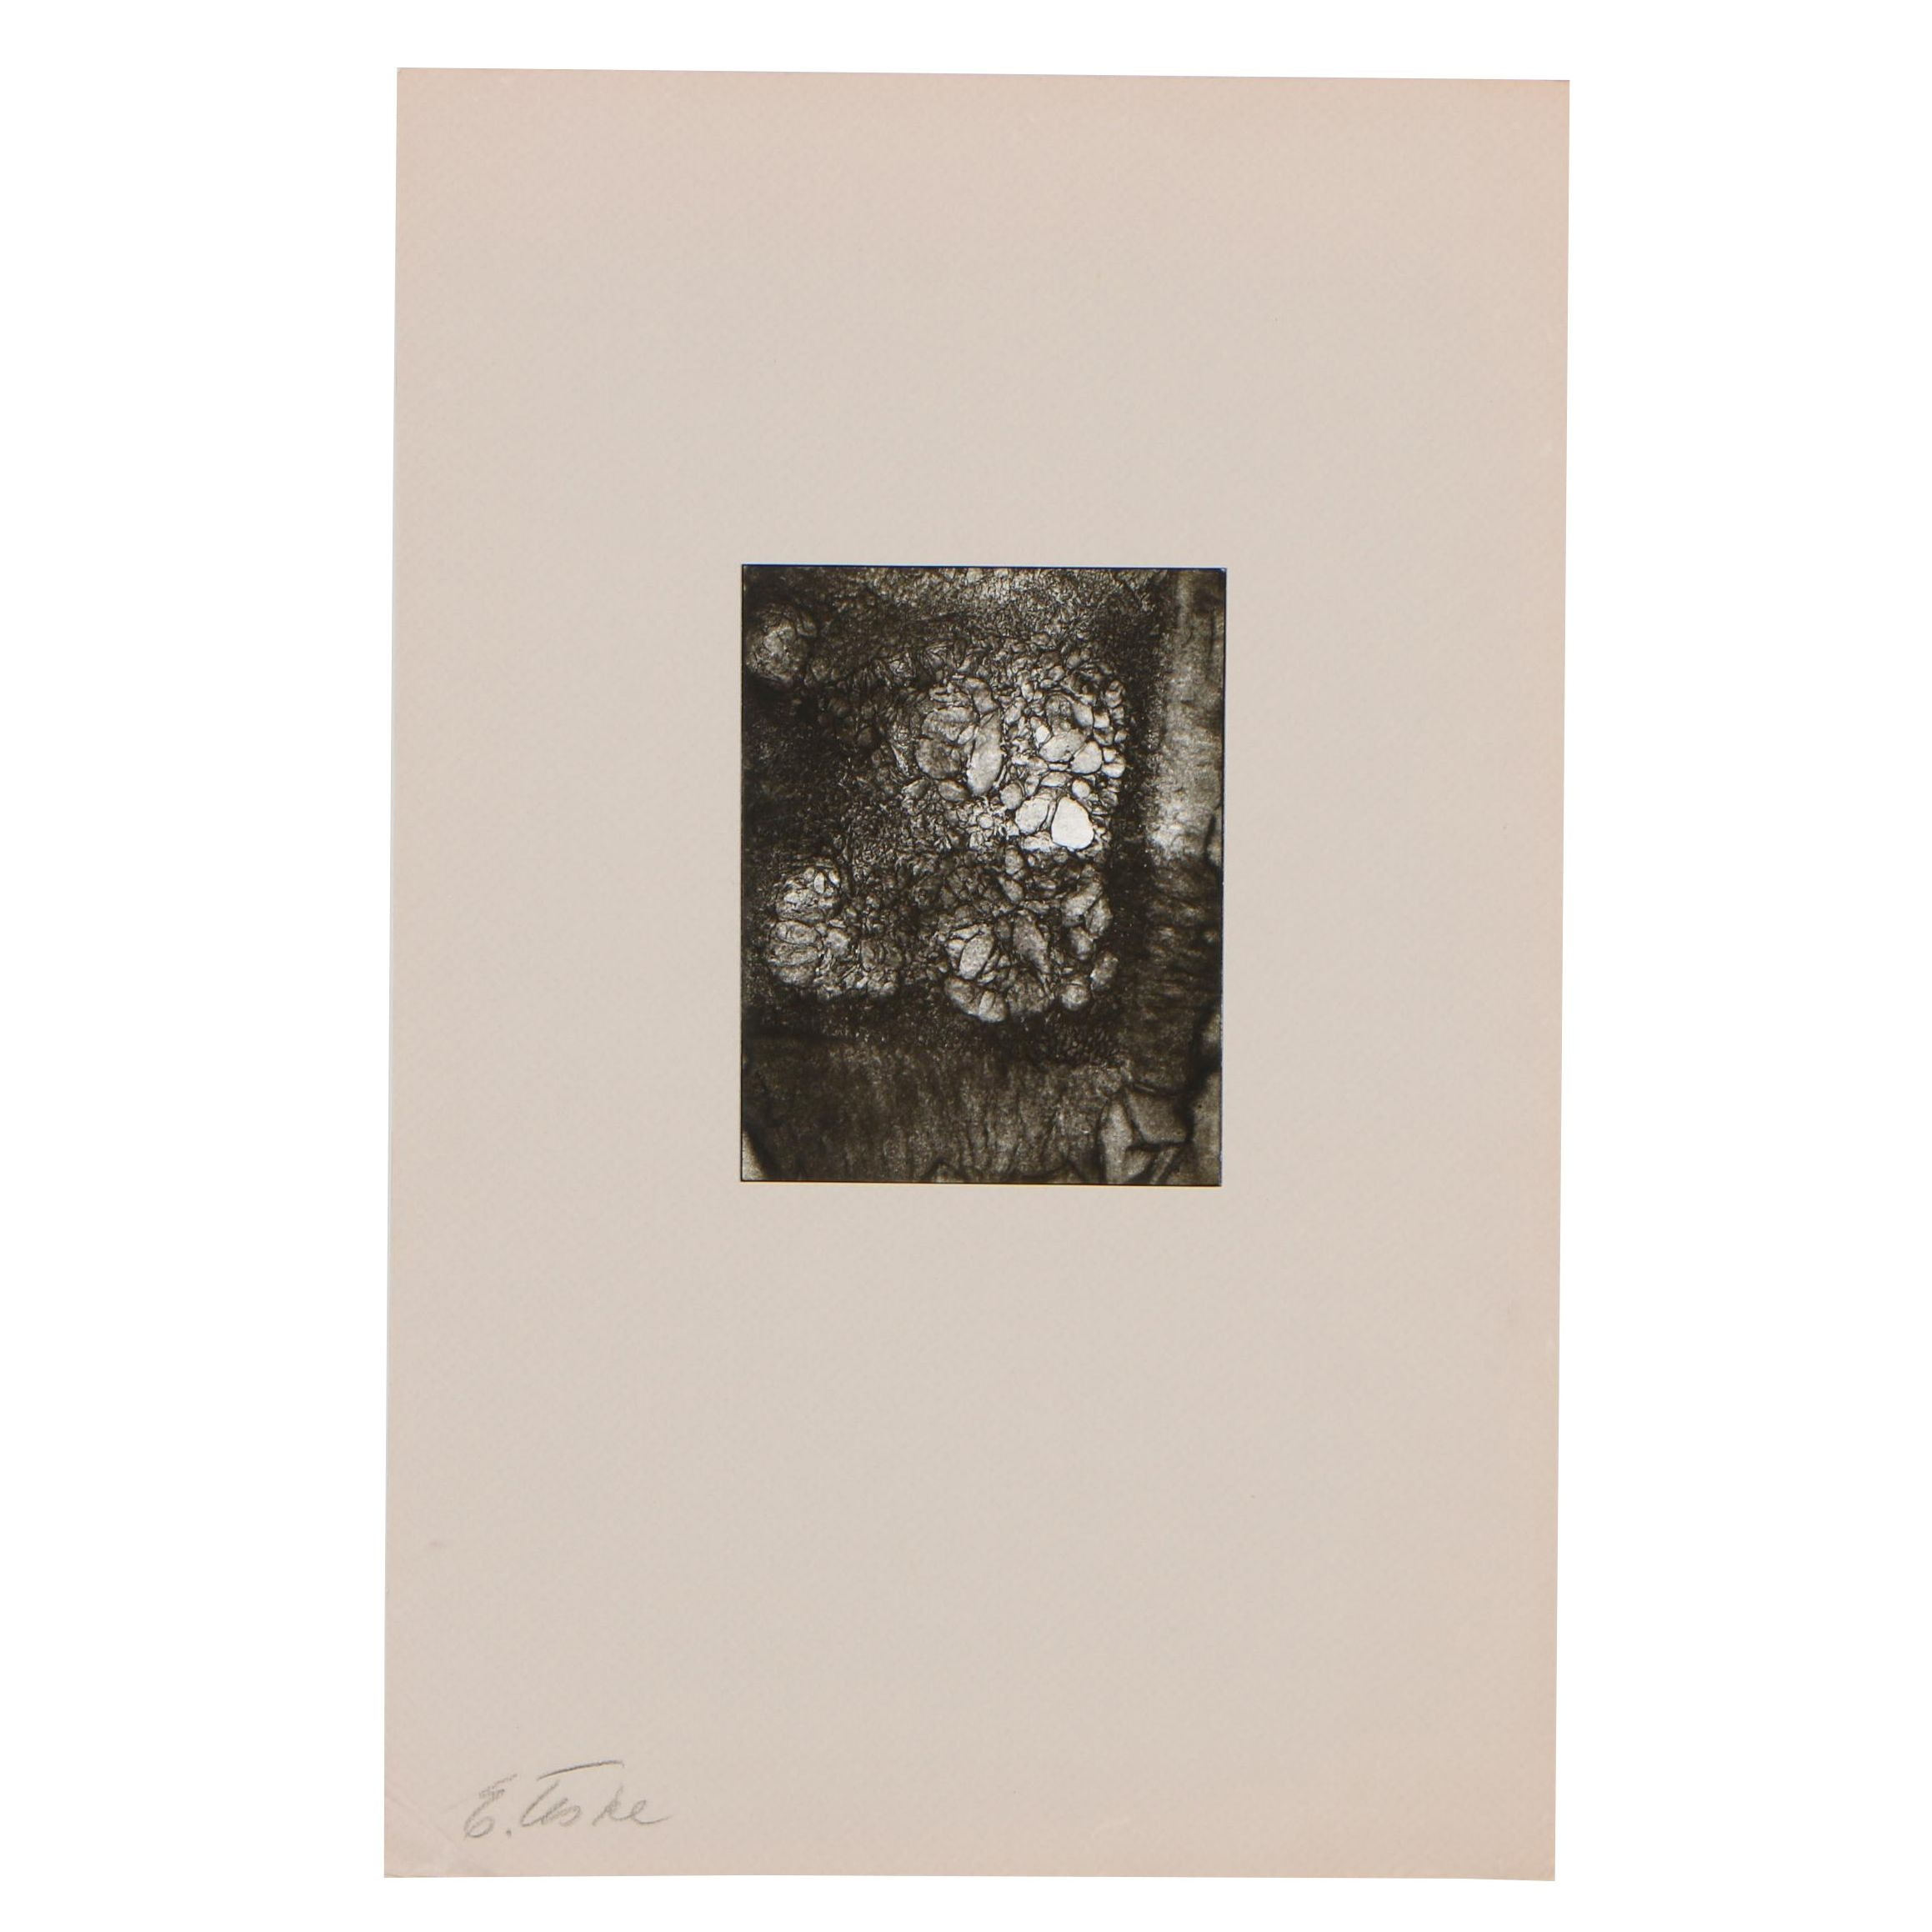 Edmund Teske Gelatin Silver Abstract Photograph